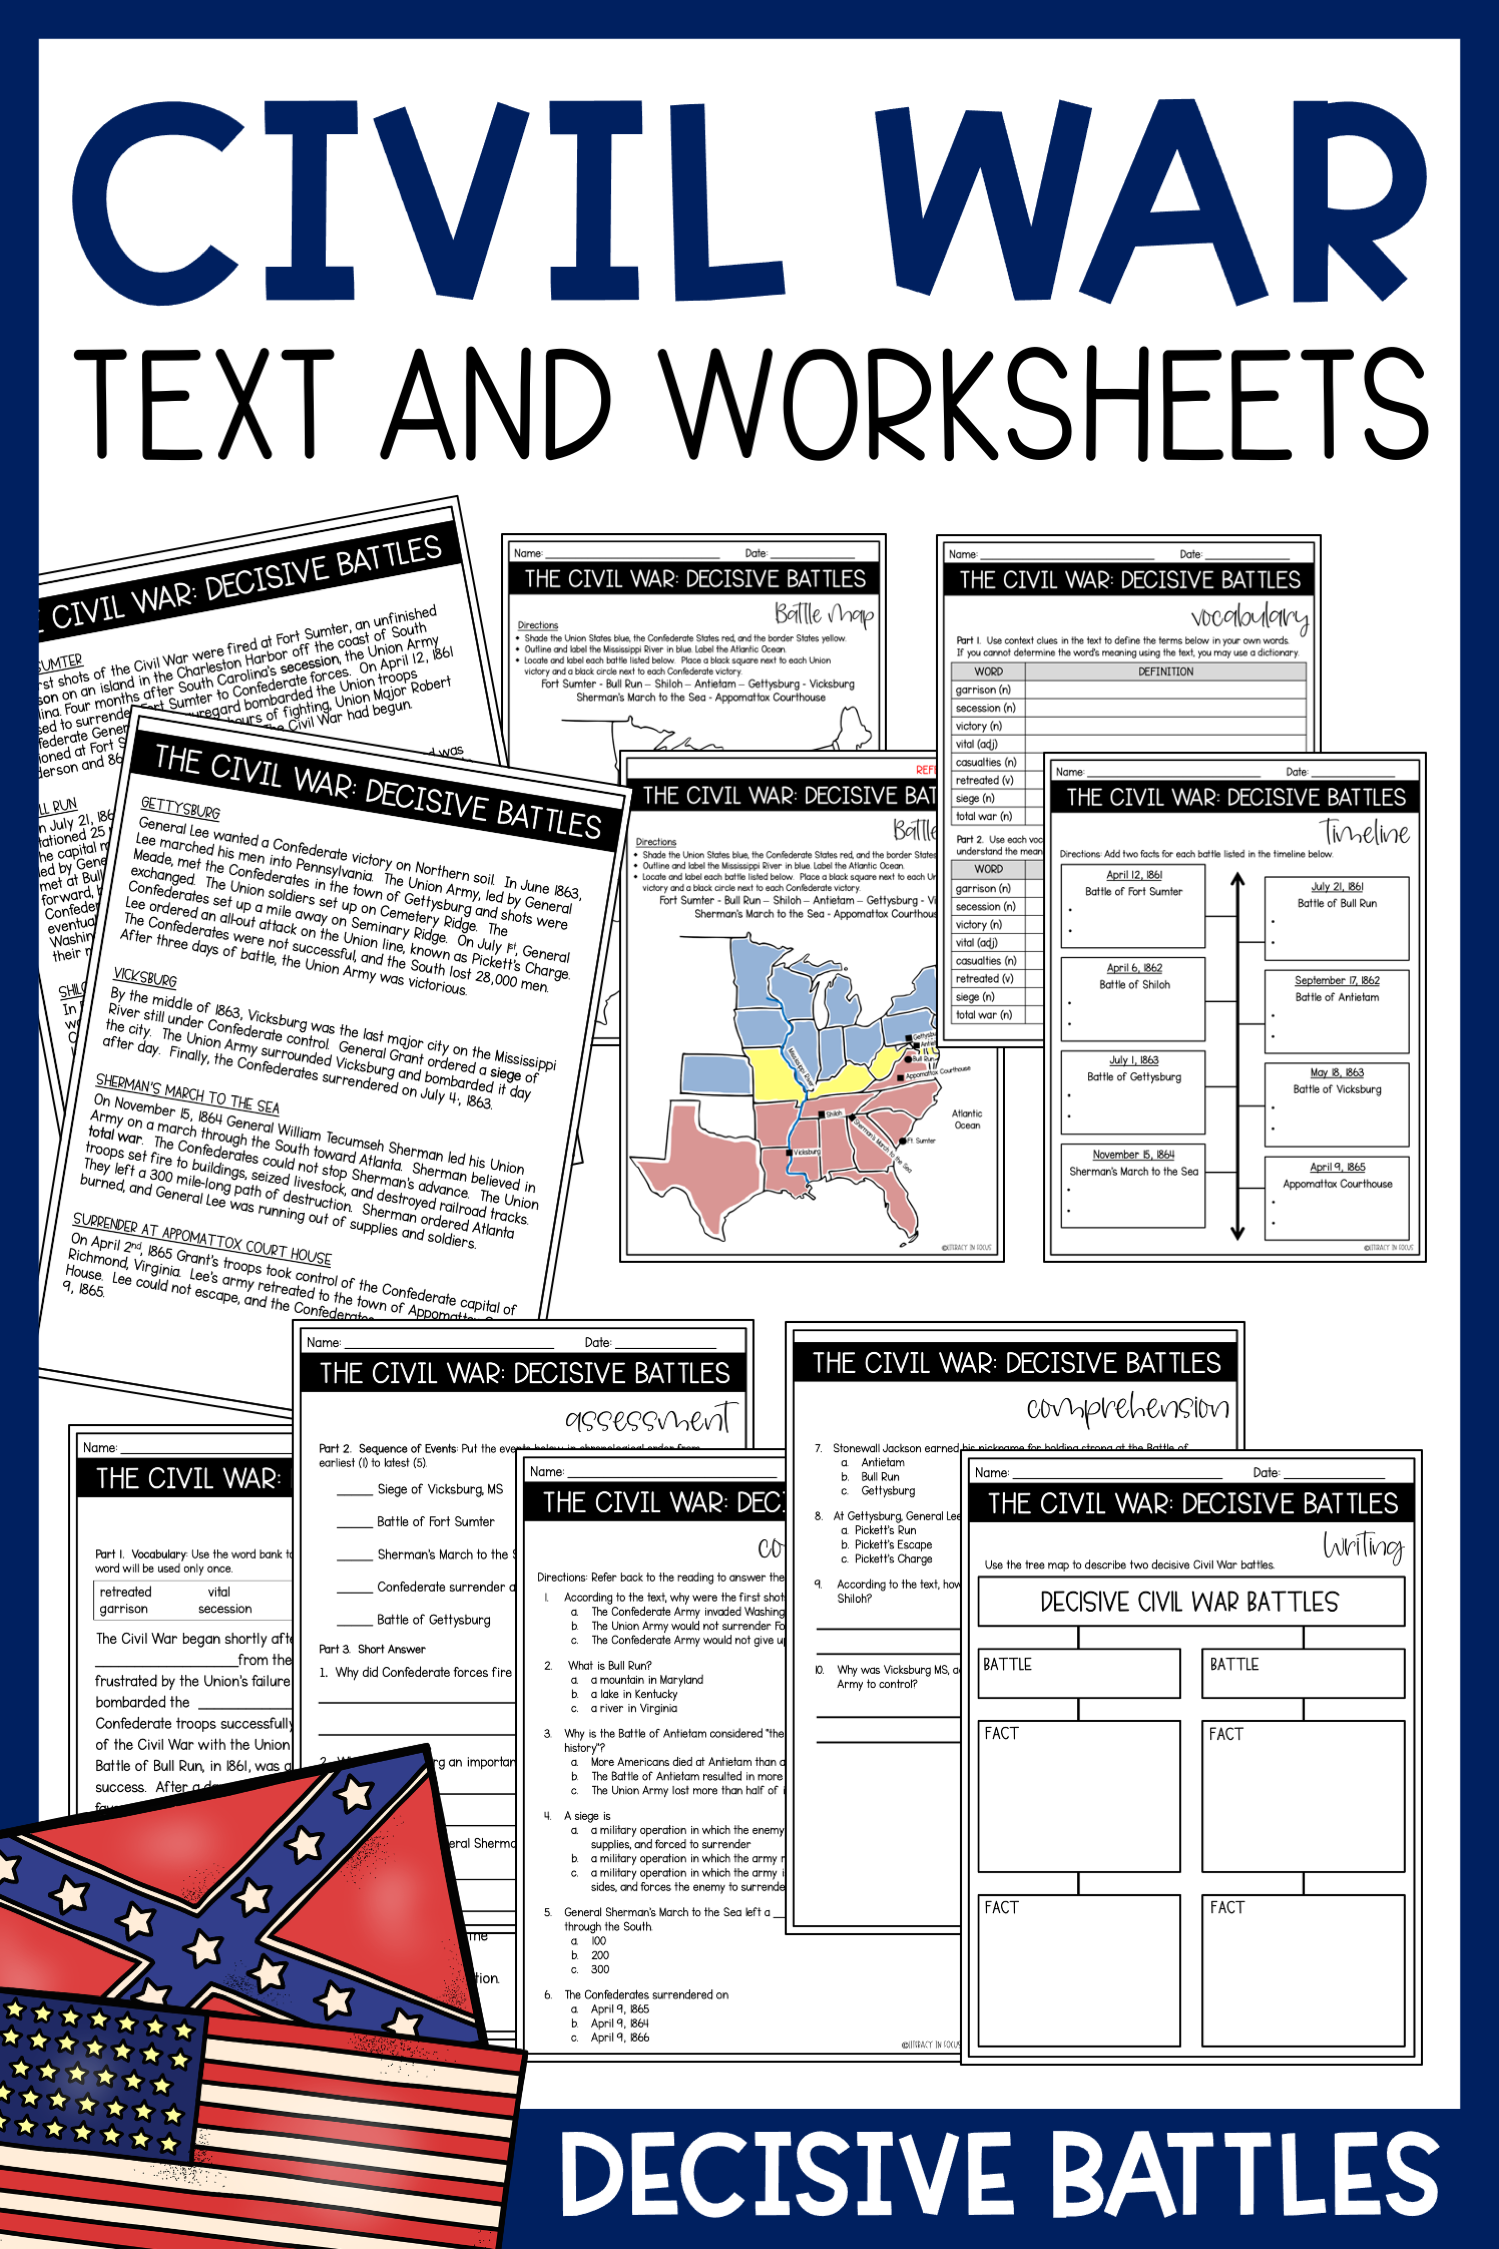 Civil War Worksheets And Activities